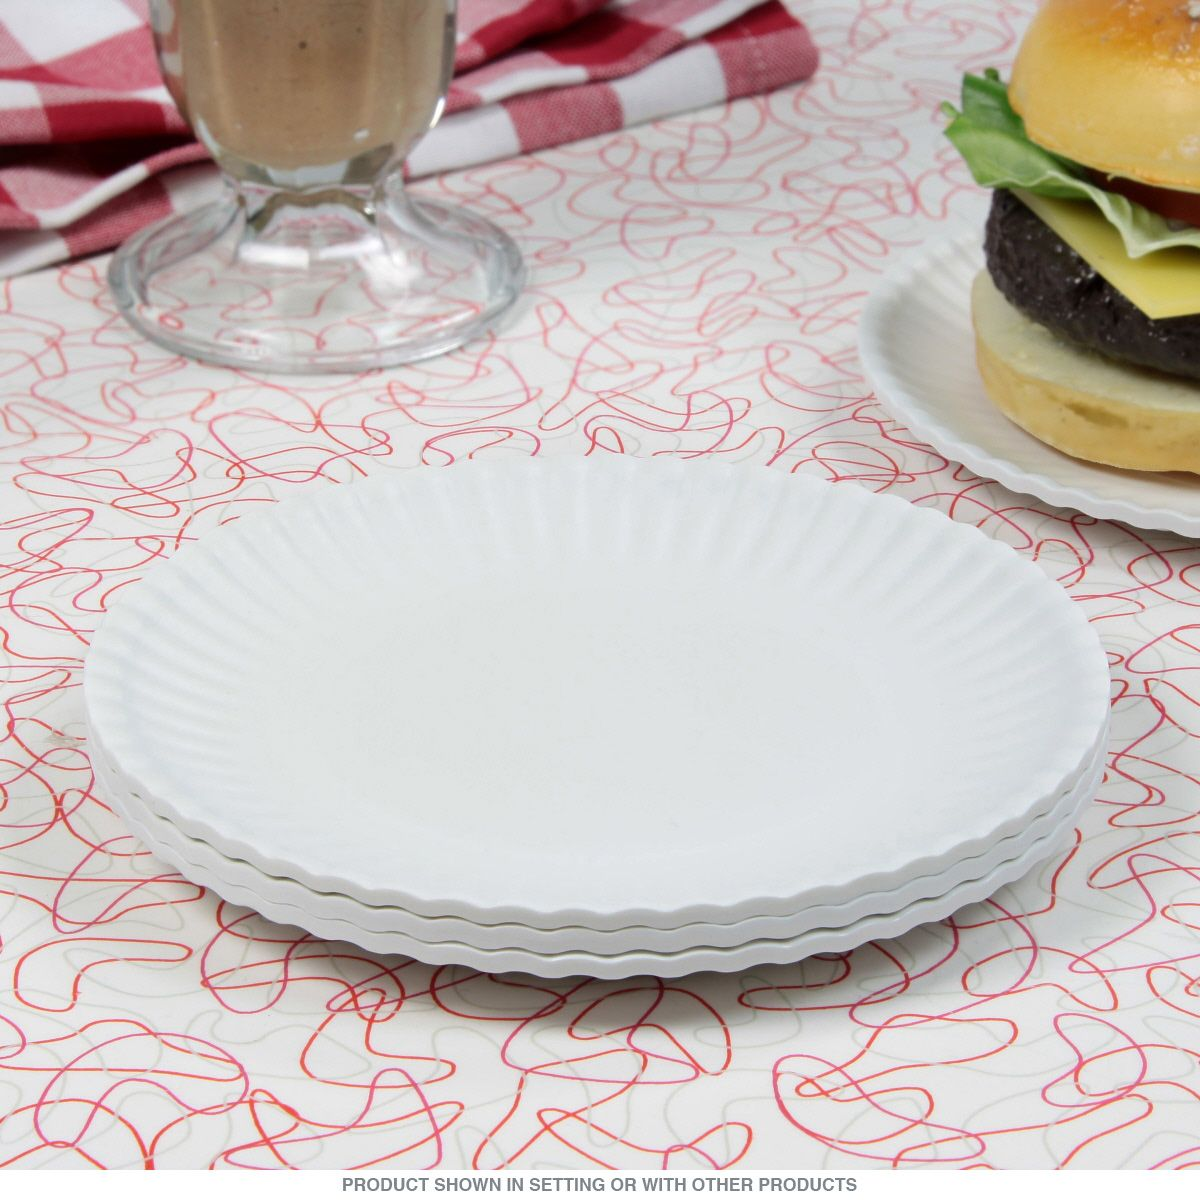 Washable Melamine Paper Style Plate Set 6 in & Washable Melamine Paper Style Plate Set 6 in | Dishwashers